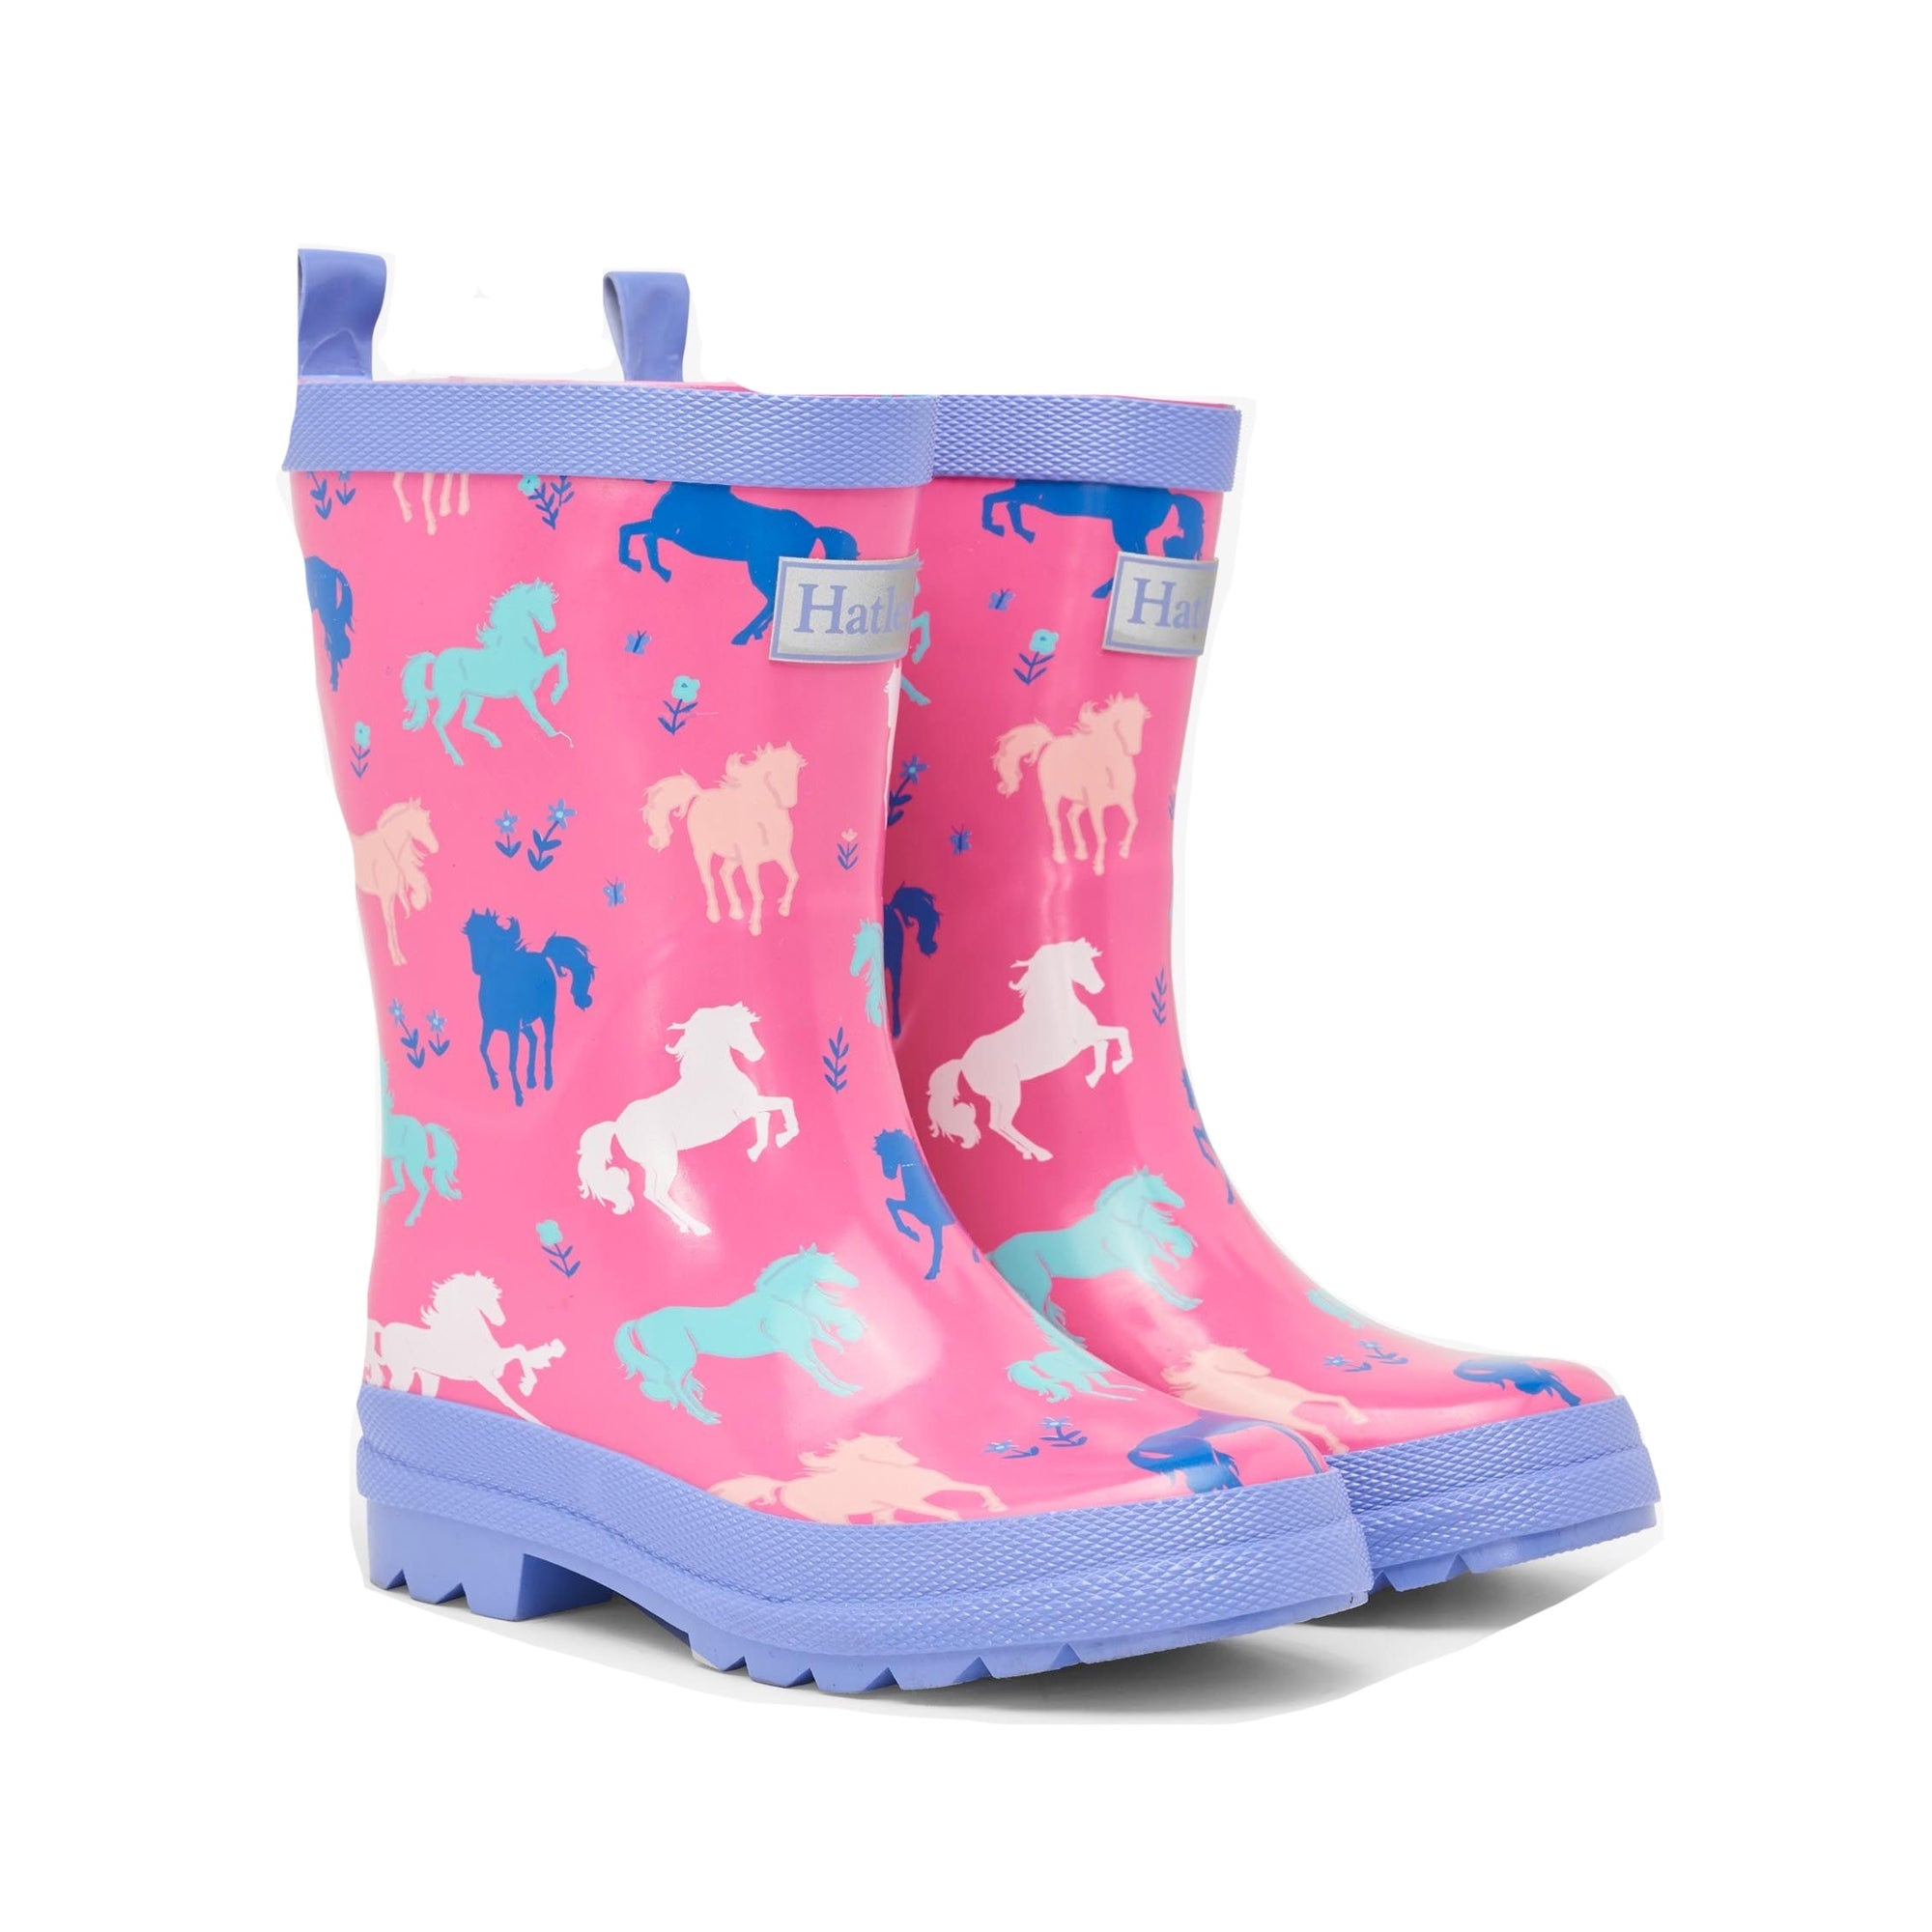 Hatley Girls Painted Pasture Wellingtons S21ppk1366